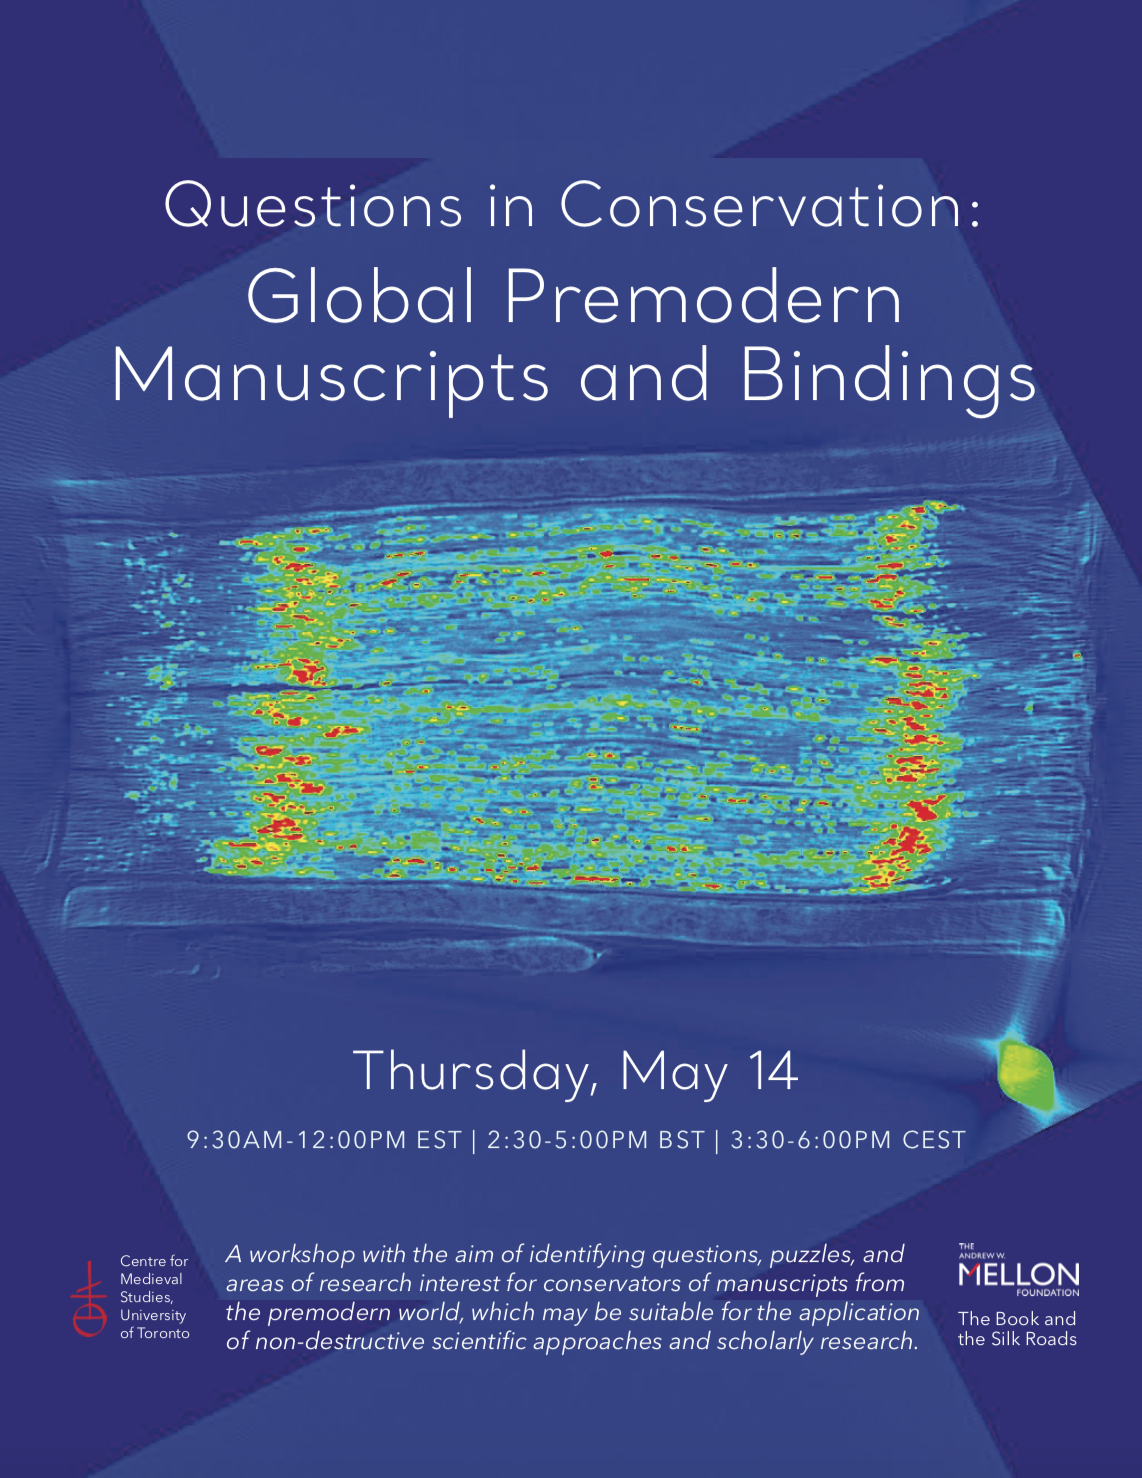 Poster for Questions in Conservation